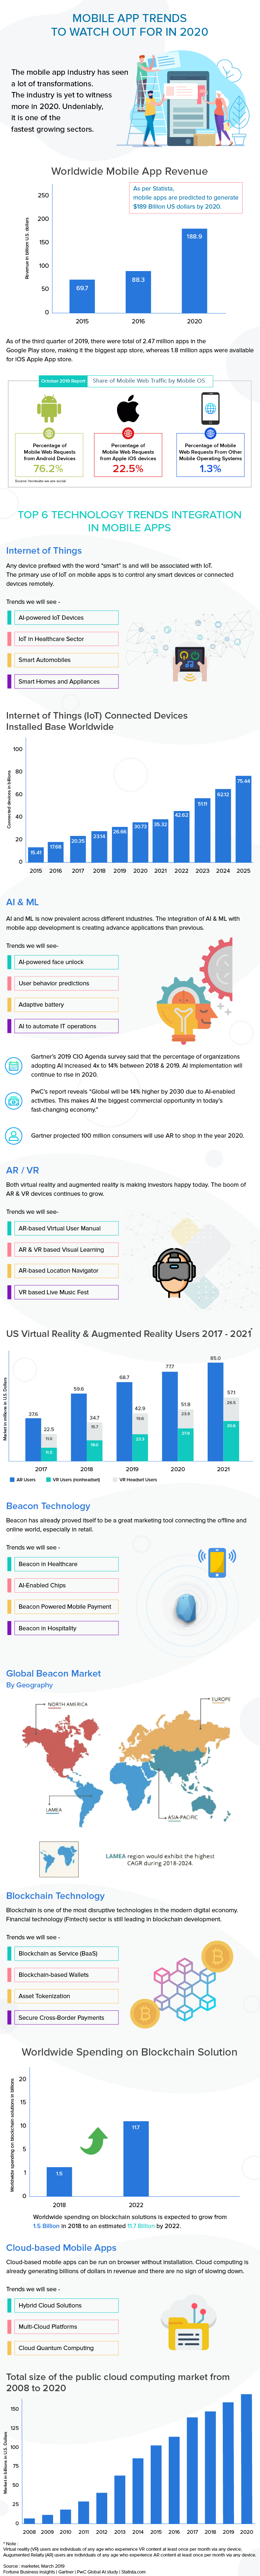 Mobile App Trends To Watch Out For in 2020 #infographic